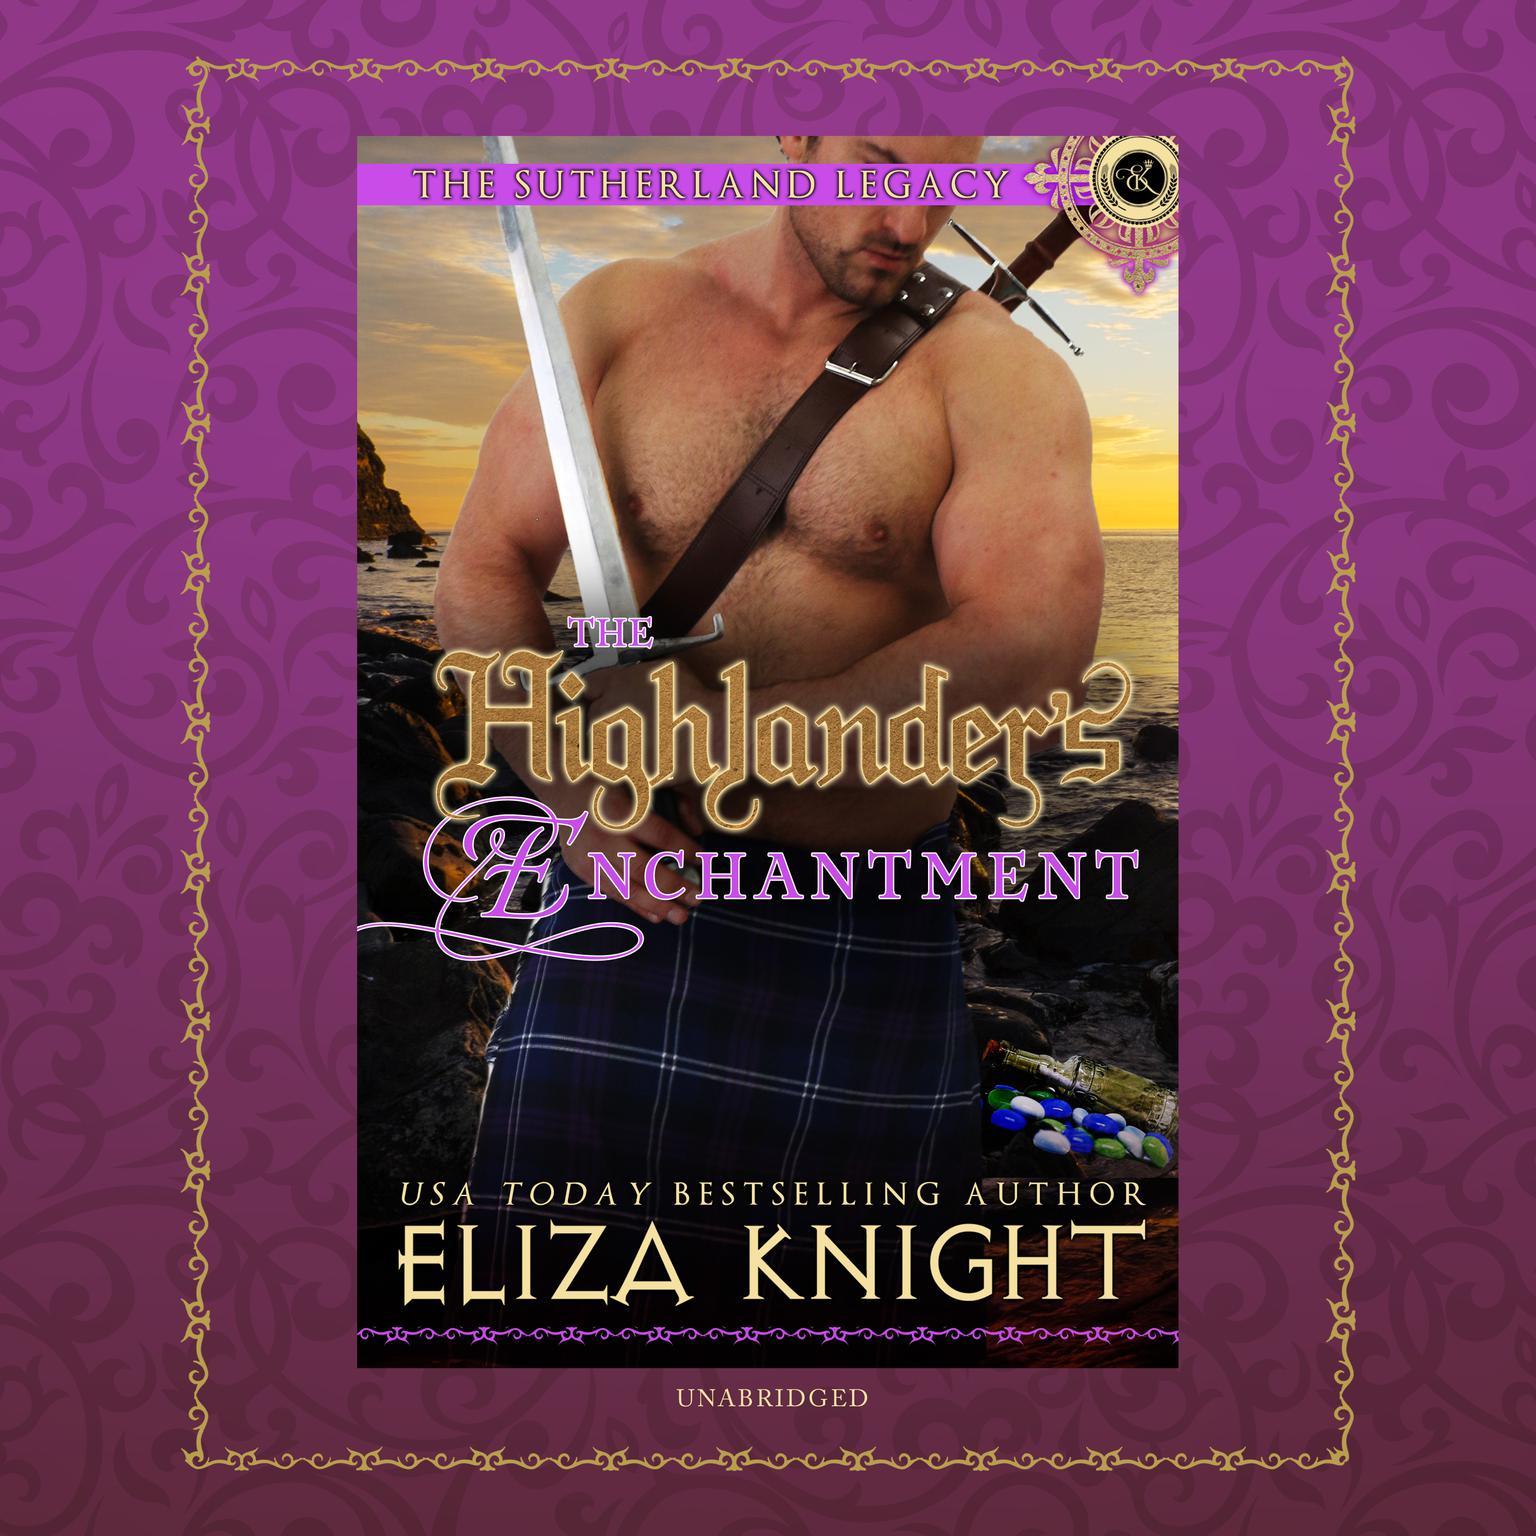 Printable The Highlander's Enchantment Audiobook Cover Art